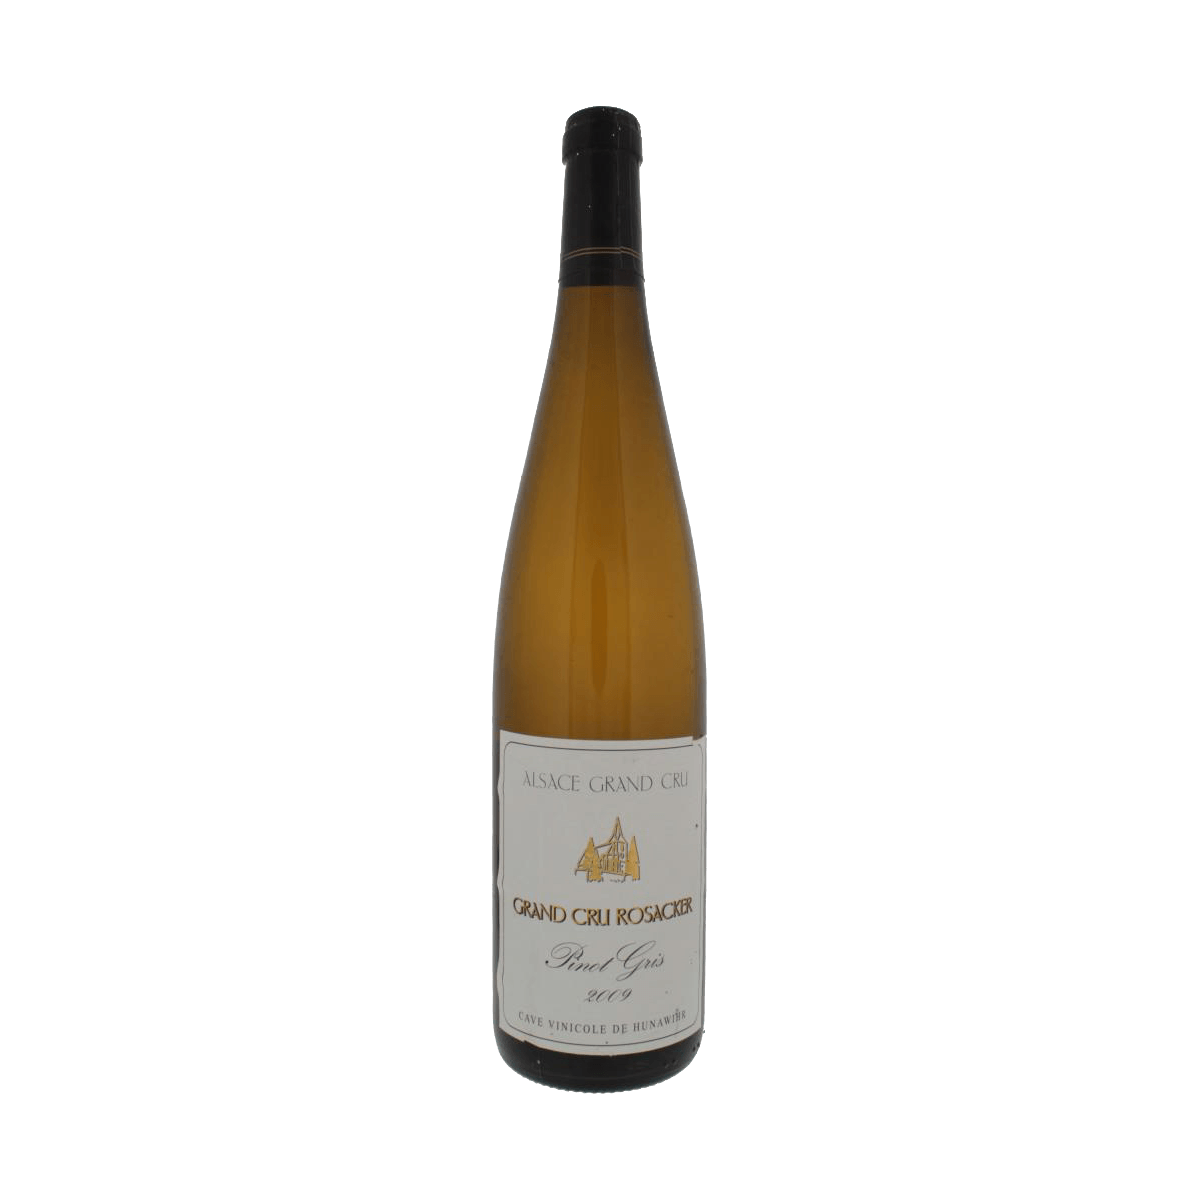 Ubrugte Buy Alsace Grand Cru Rosacker Pinot Gris 2009 at Uvinum KM-27